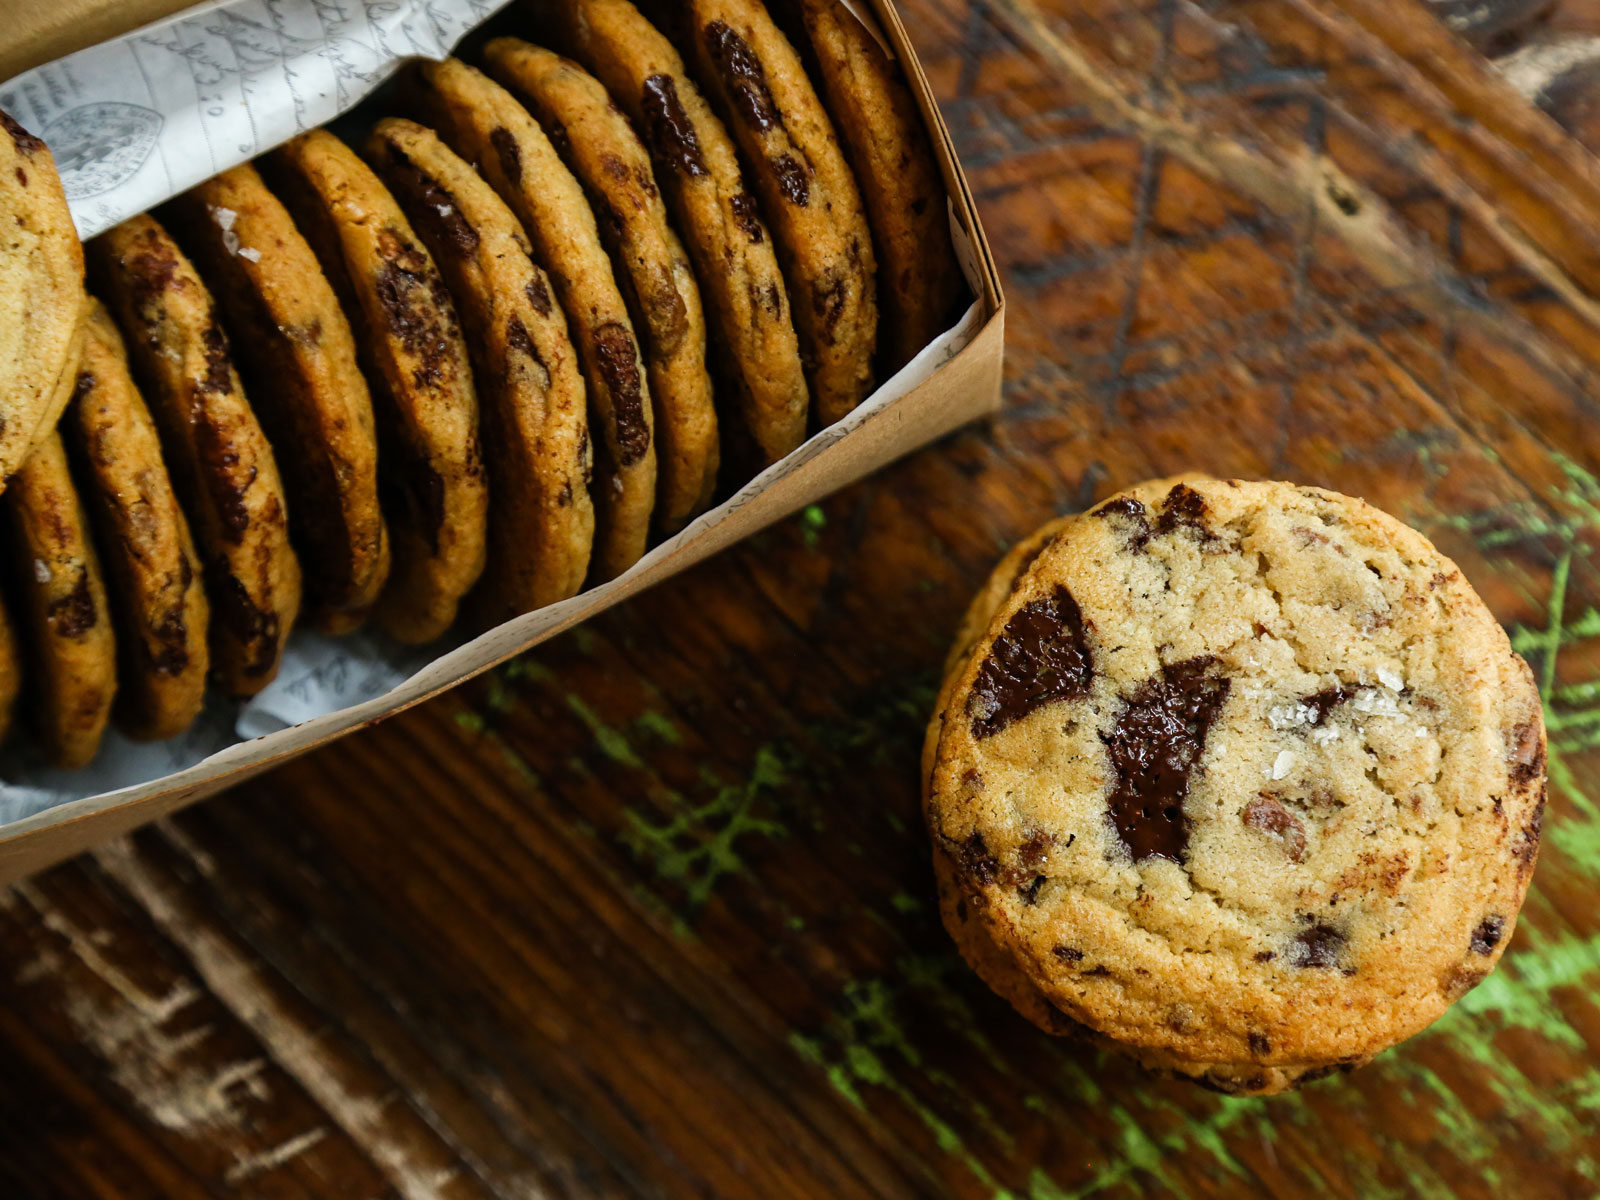 Willa Jean Chocolate Chip Cookies